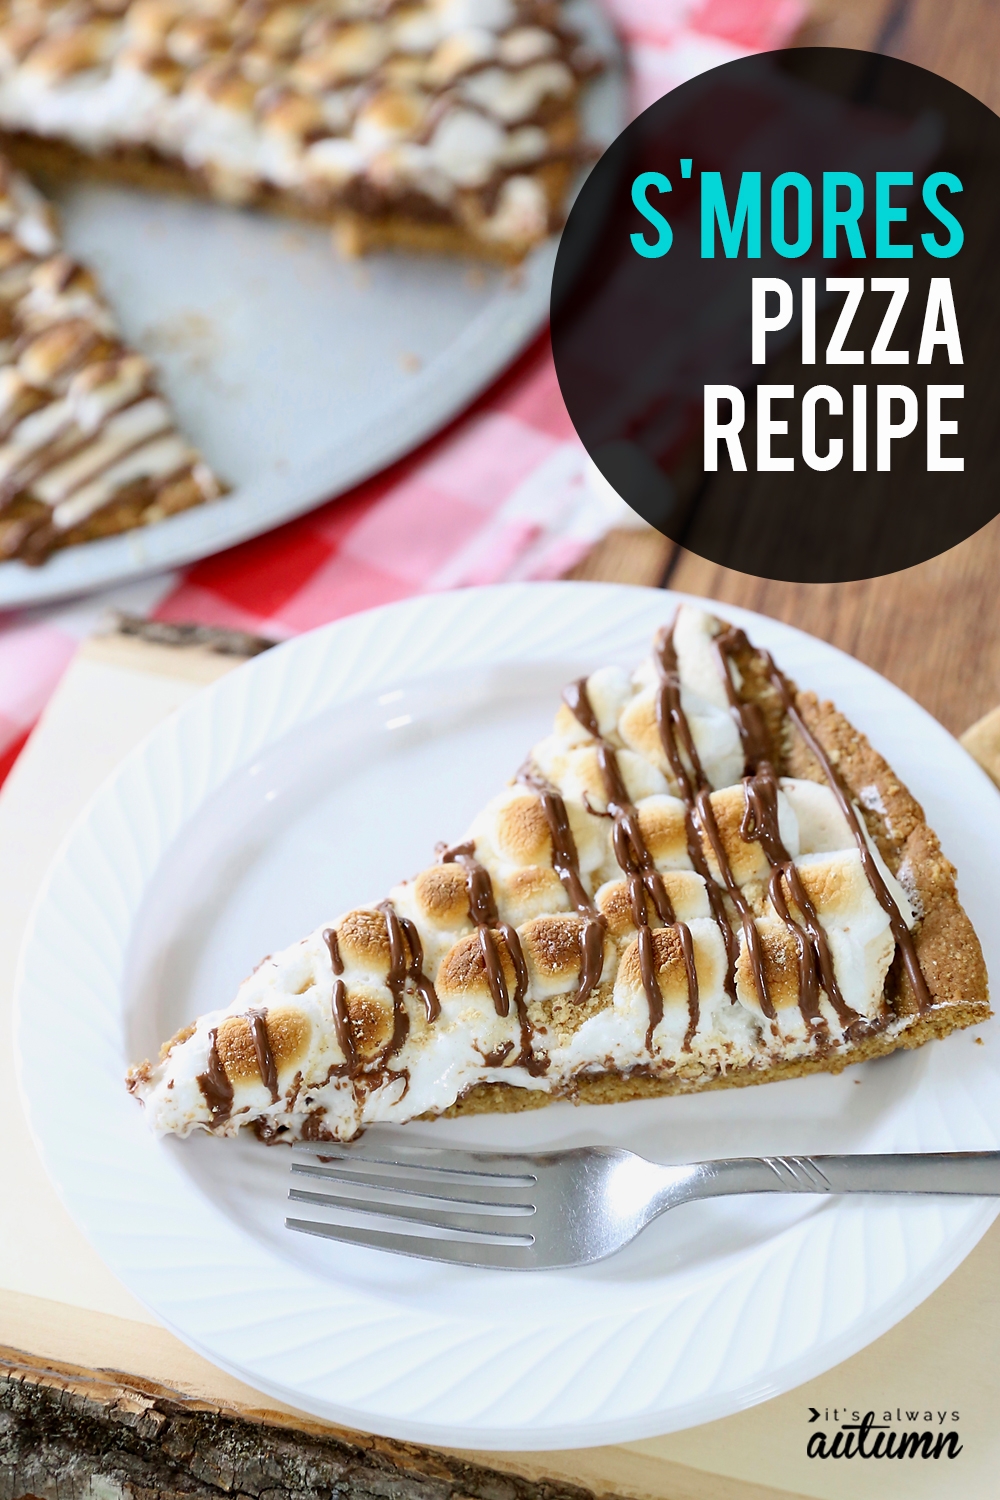 S'mores pizza is the best way to get your s'mores fix without a campfire! Made in the oven with tons of chocolate and marshmallows and a delicious graham cracker crust, smores pizza is the perfect summer dessert for a crowd.